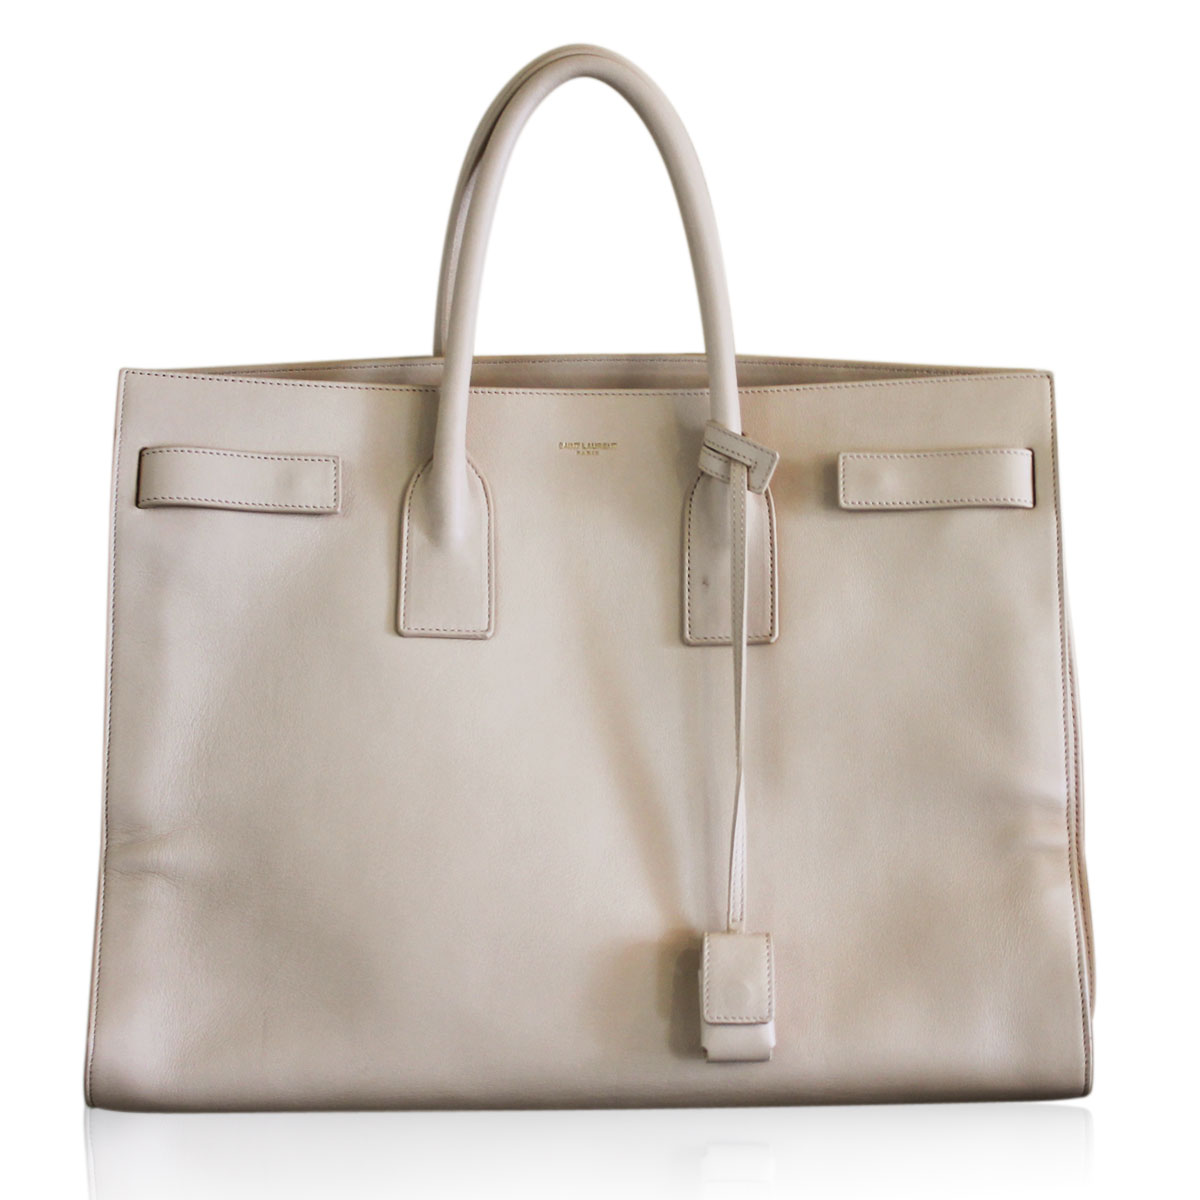 Saint Laurent Large Sac De Jour Bag In Powder Leather